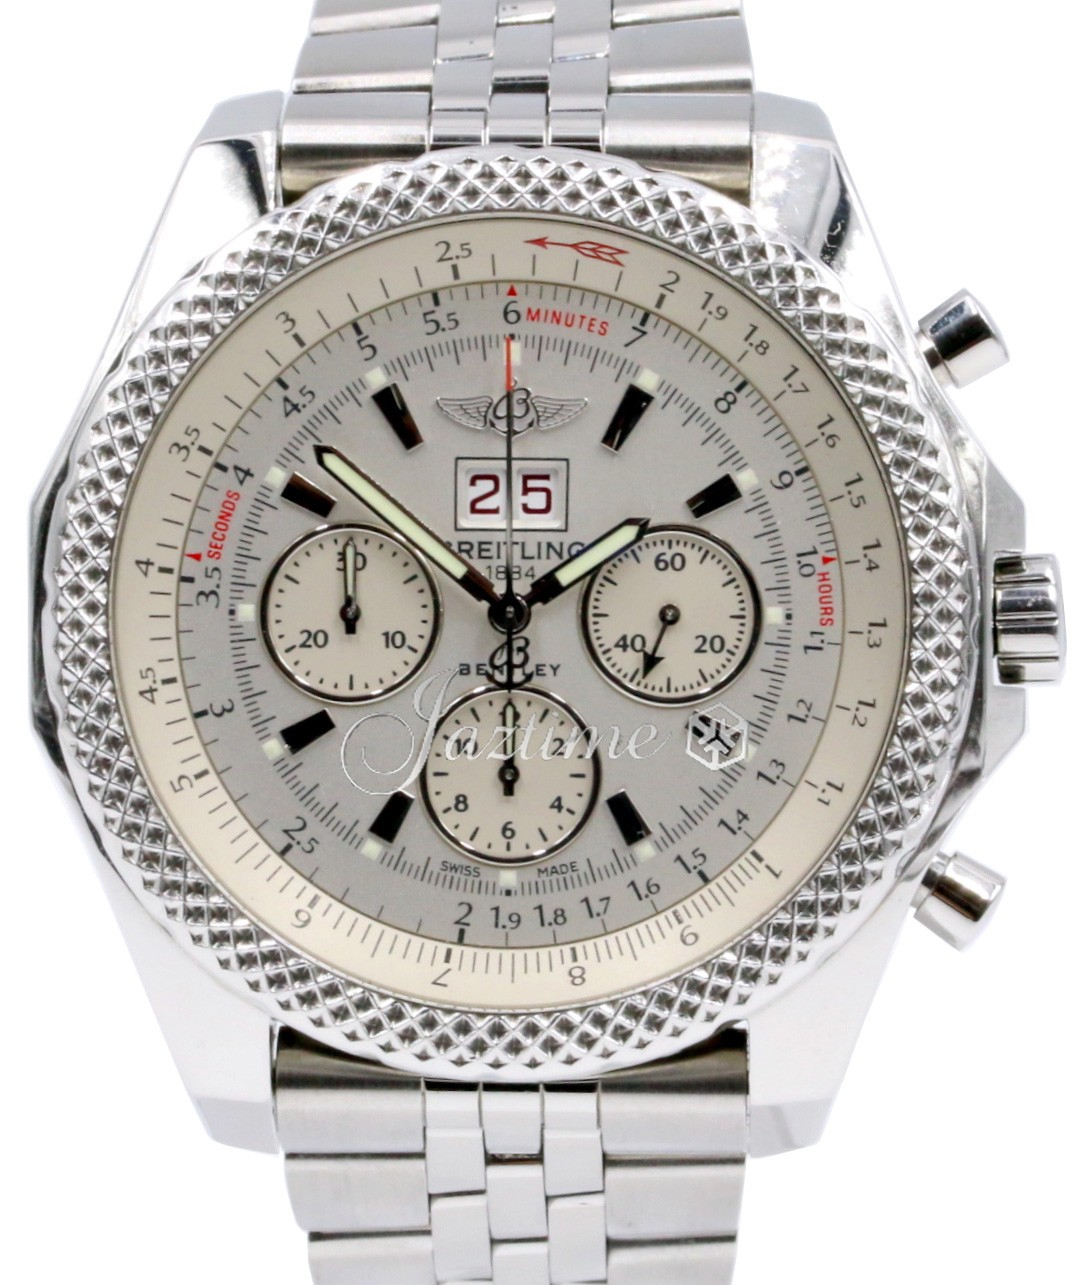 Breitling A44364 Bentley 6.75 White » For SALE